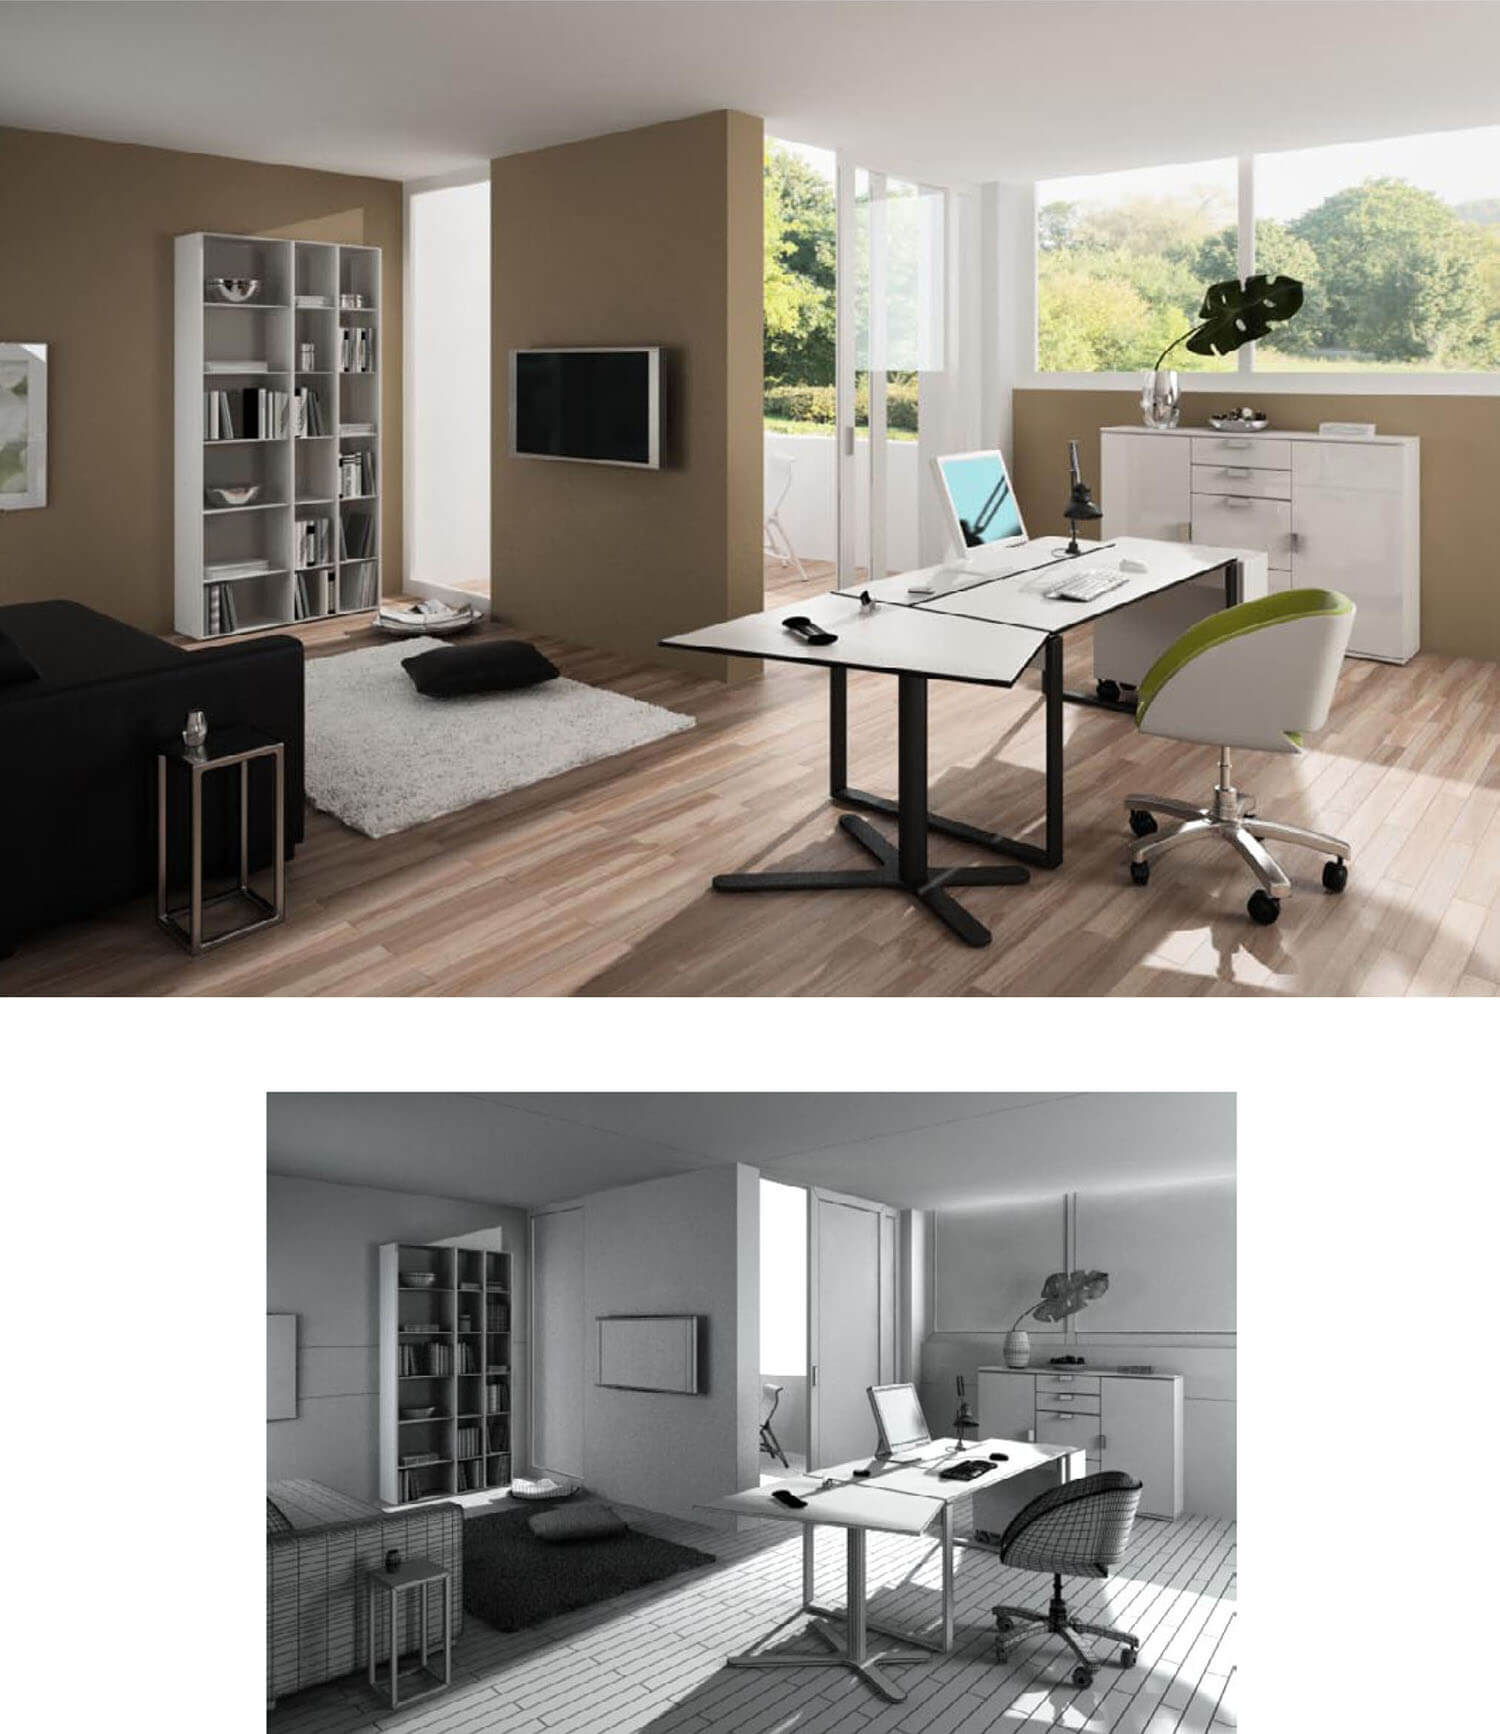 MODEL OFFICE FORM SMALL WORK MODERN MODERN